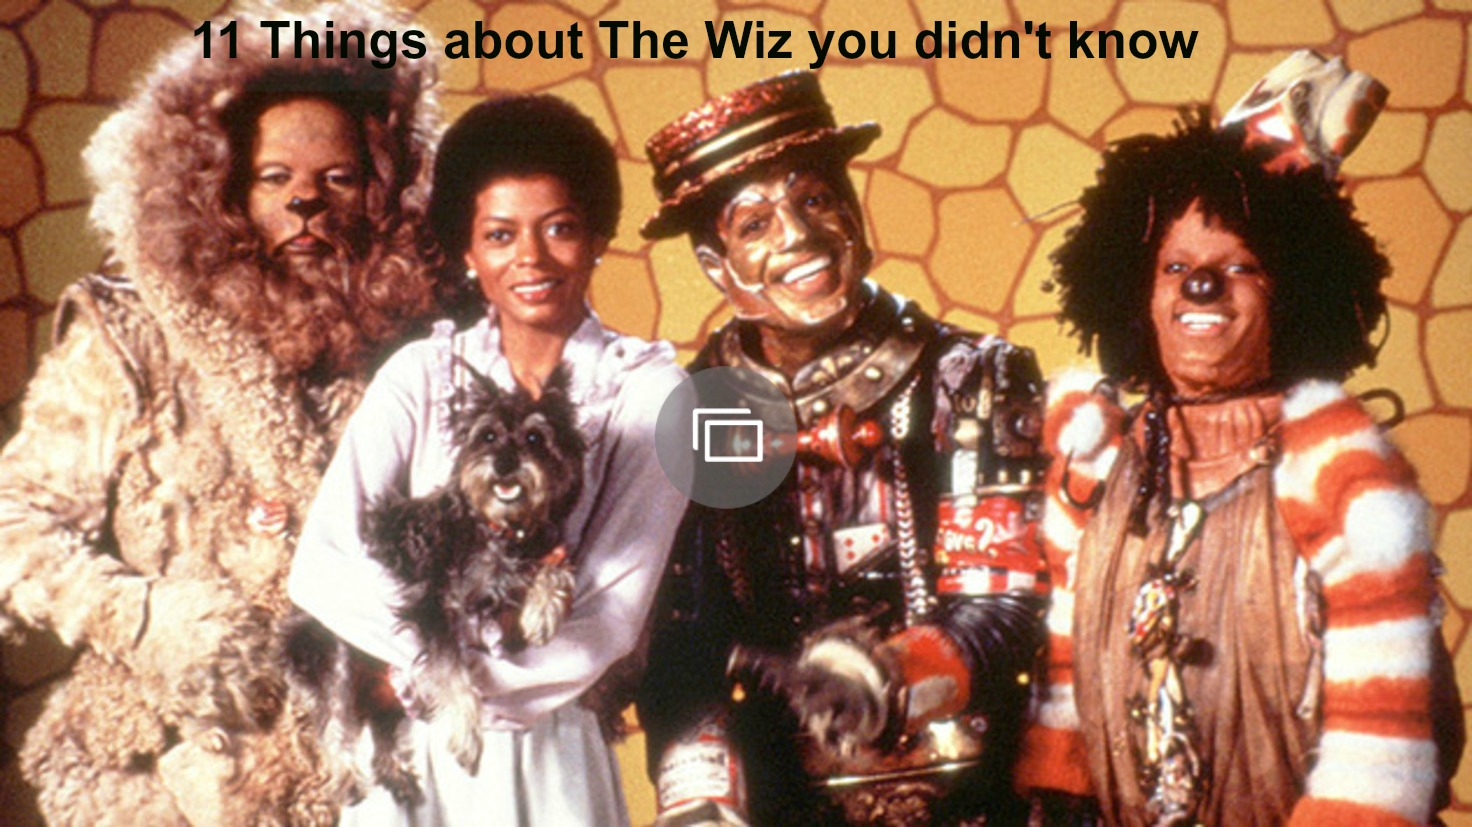 The Wiz Live! just turned into a Twitter troll-fest